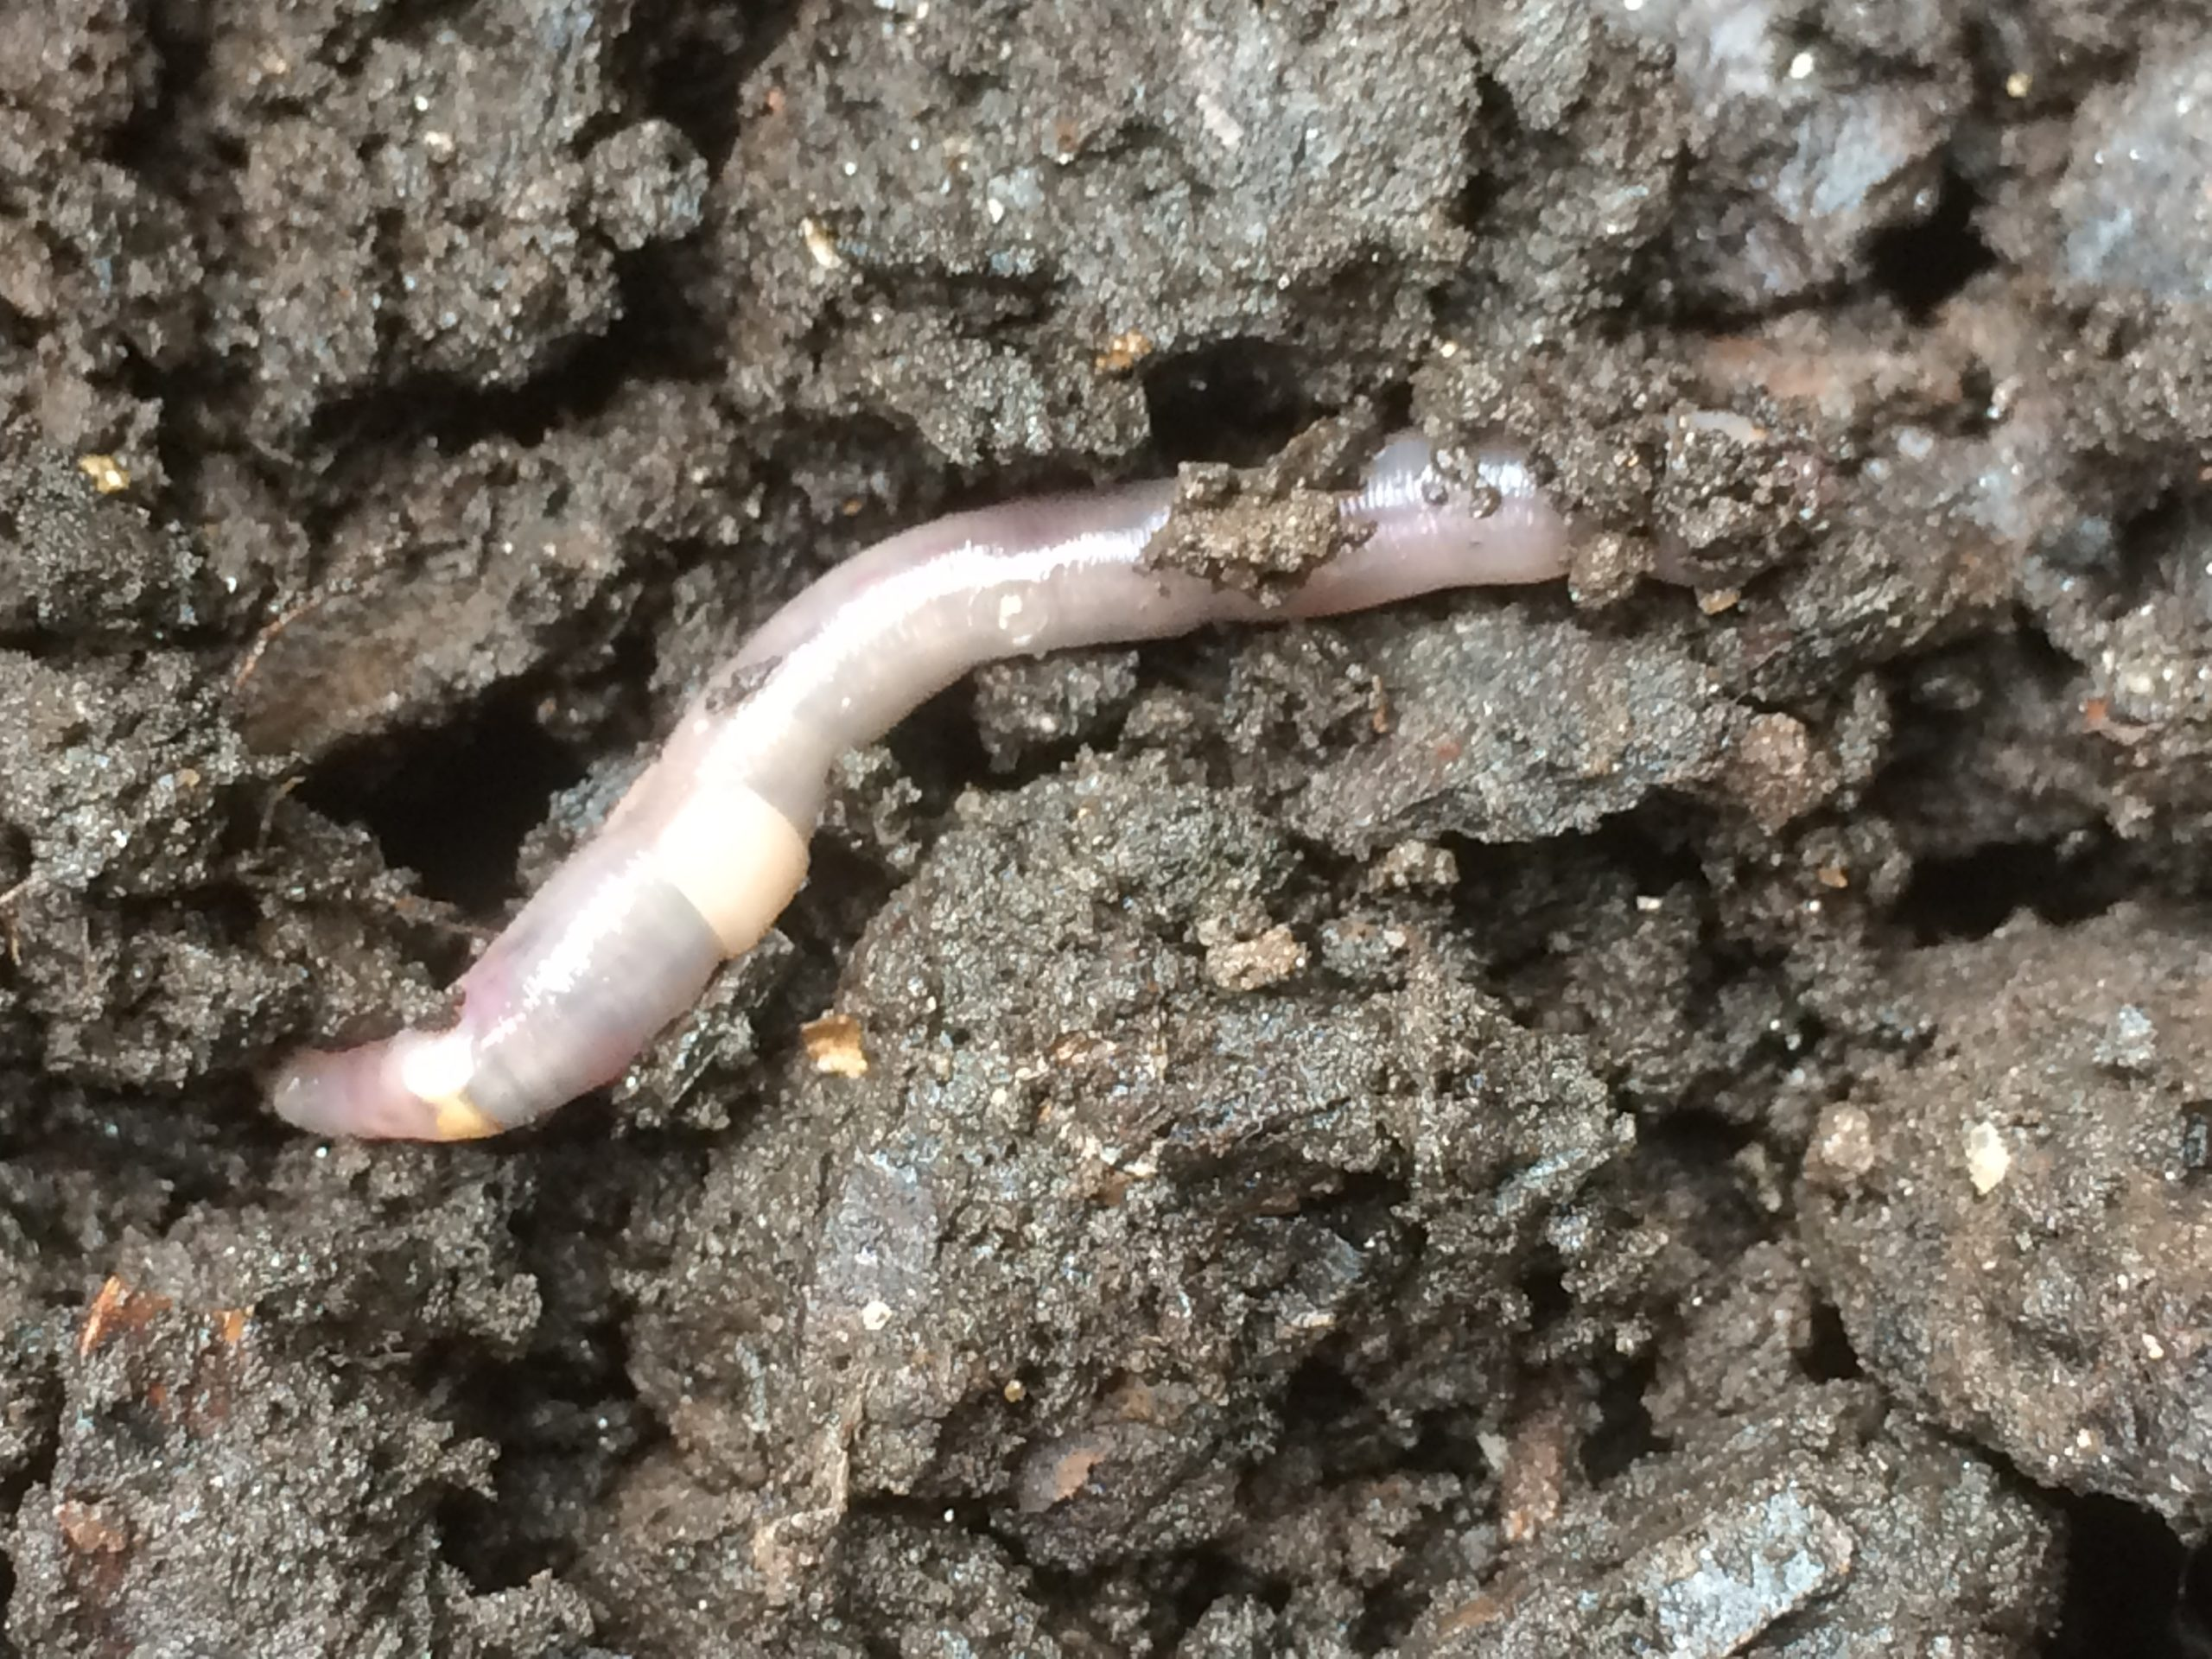 Earth (Day) Worms